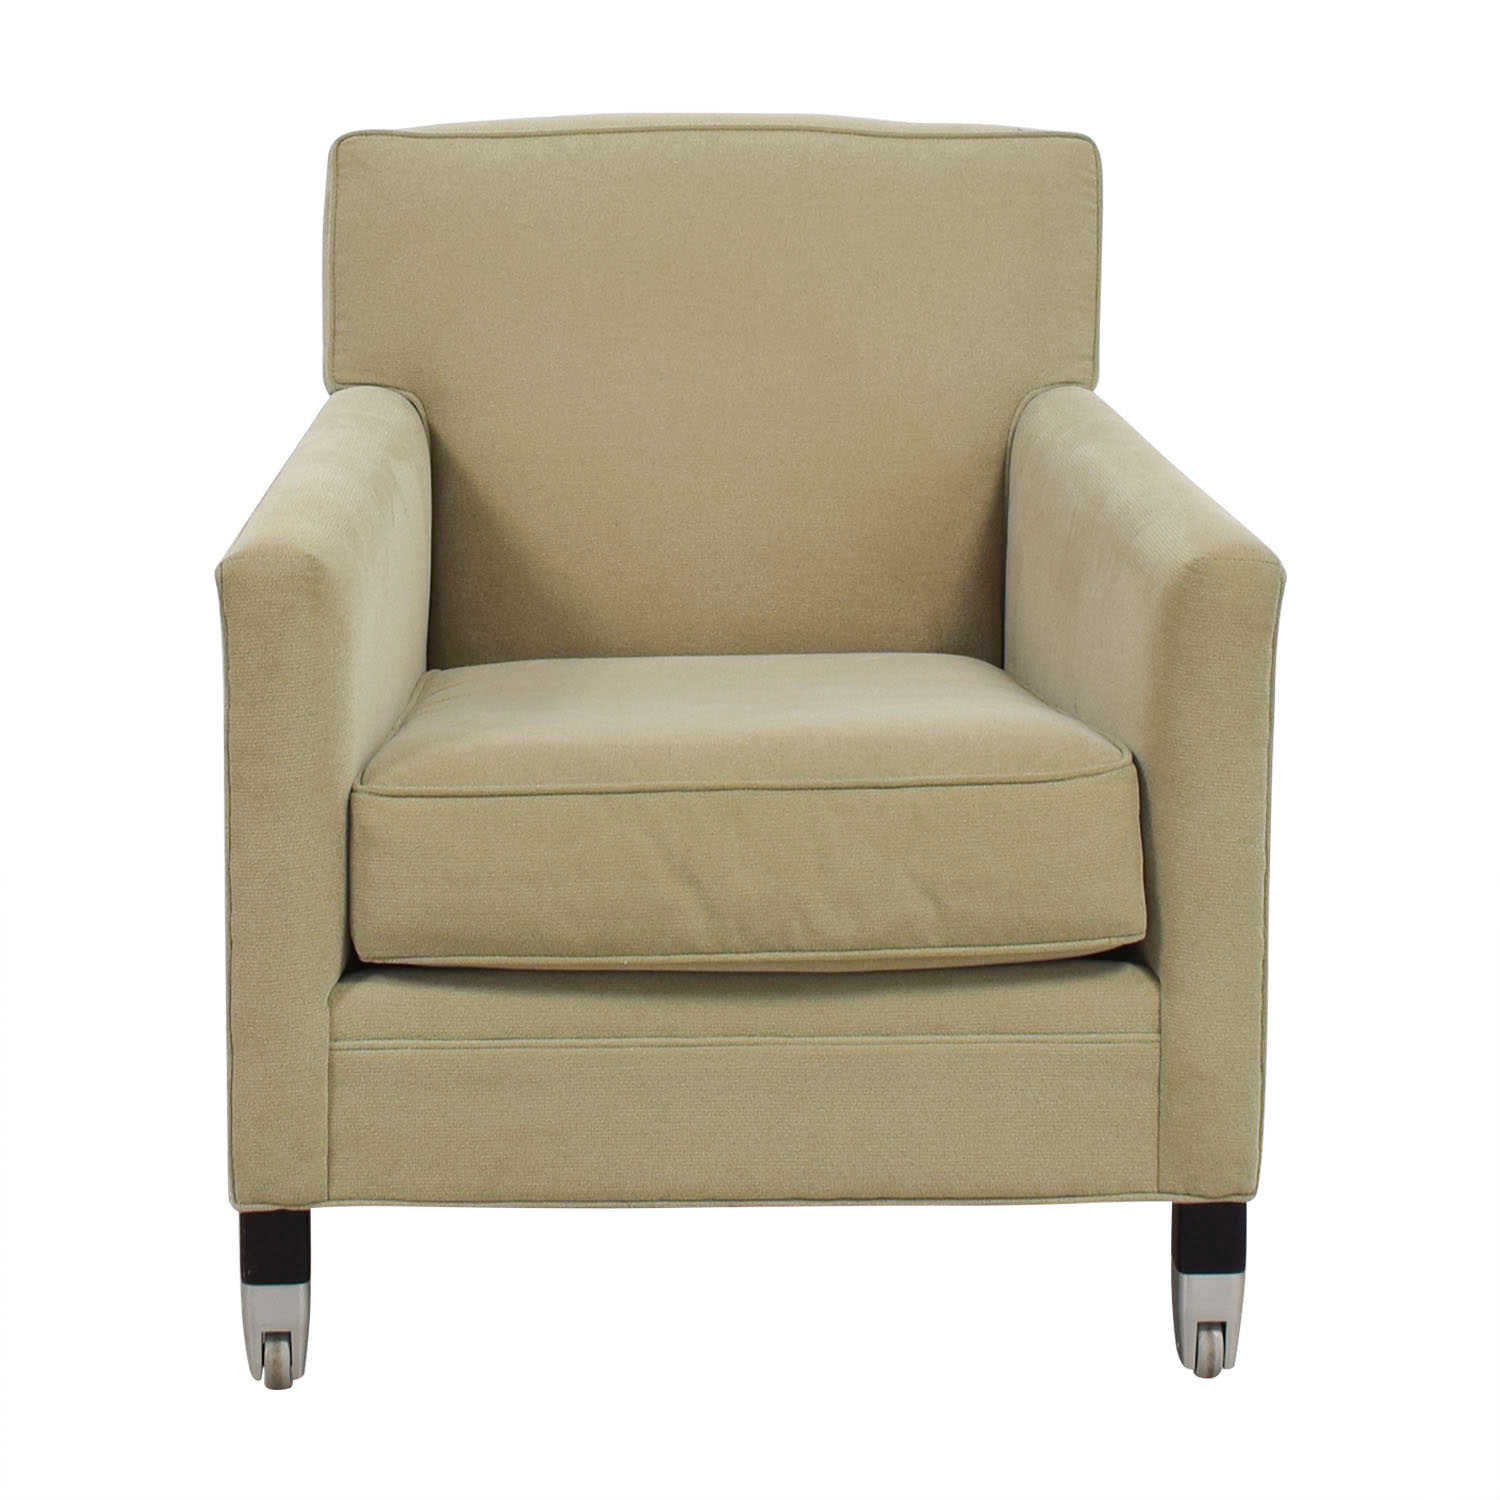 Surprising 81 Off Mitchell Gold Bob Williams Mitchell Gold Bob Williams Light Green Accent Chair Chairs Home Remodeling Inspirations Propsscottssportslandcom